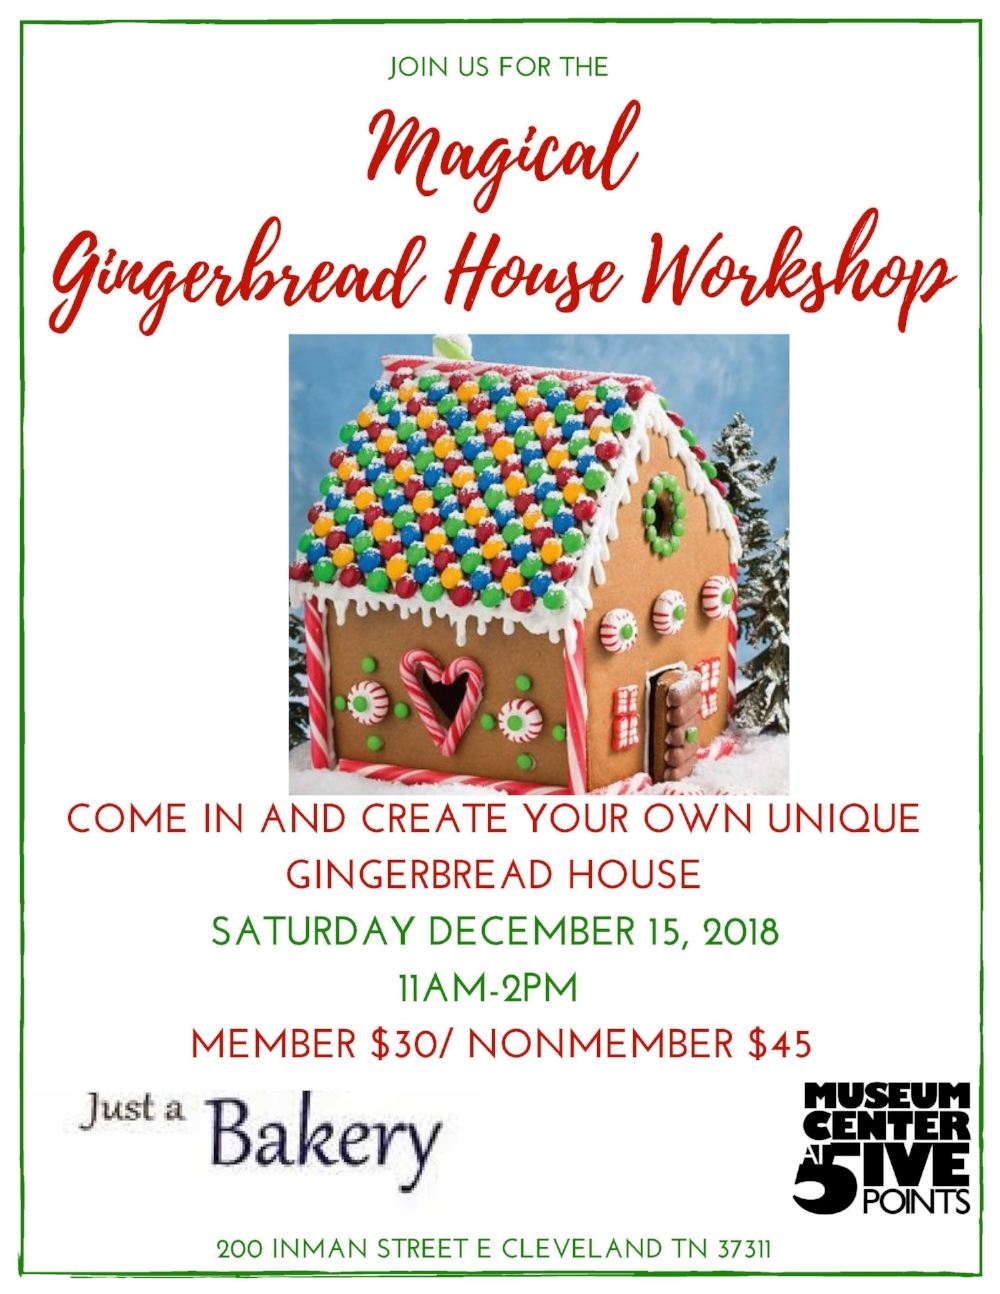 MagicalGingerbread House Workshop.jpg